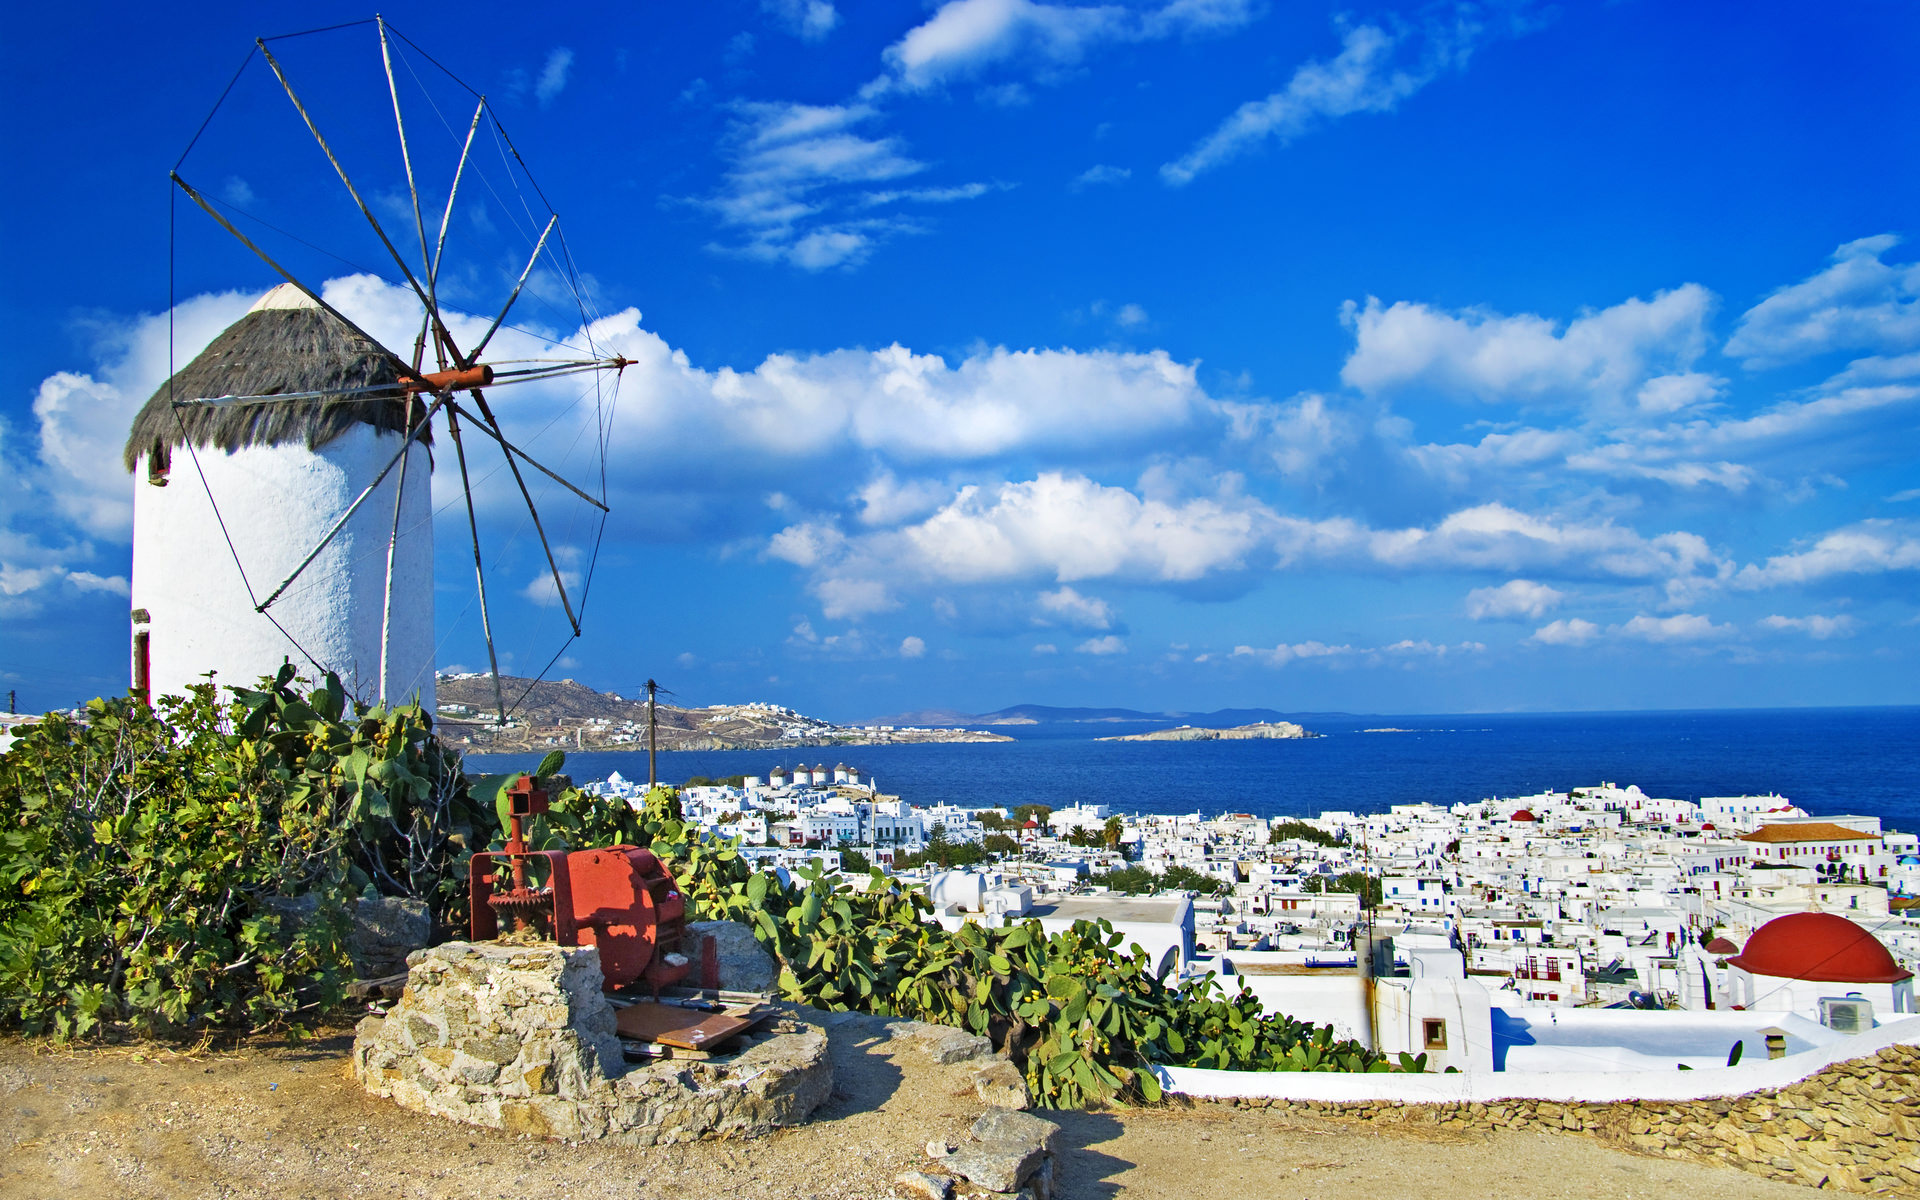 Mykonos Greece In High Resolution Hd Desktop Wallpaper: 21+ Travel Wallpapers, Backgrounds, Images